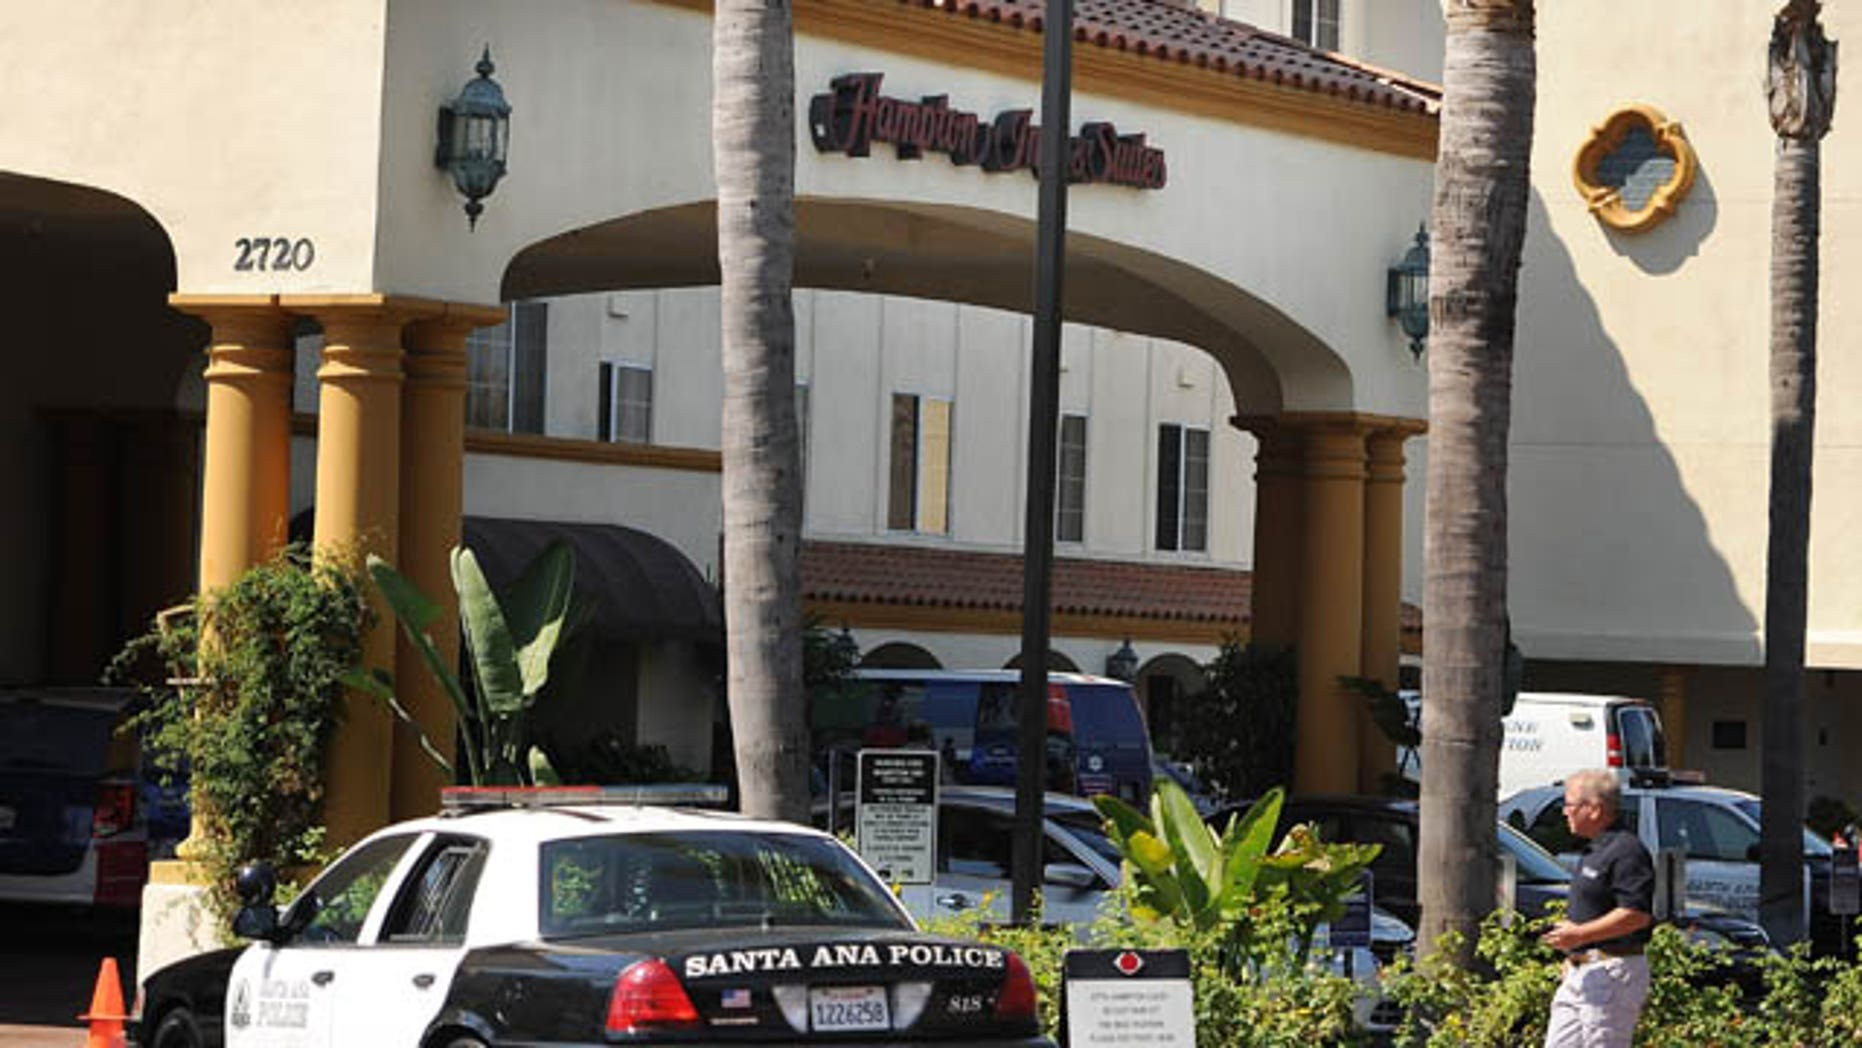 September 14, 2013: Two children were killed at the Hampton Inn Suites on Grand and Dyer in Santa Ana said Anthony Bertagna, with the Santa Ana Police Department. The mother of the children allegedly tried to commit suicide by ramming her car into a utility box behind a shopping center in Costa Mesa, Calif. (AP Photo)